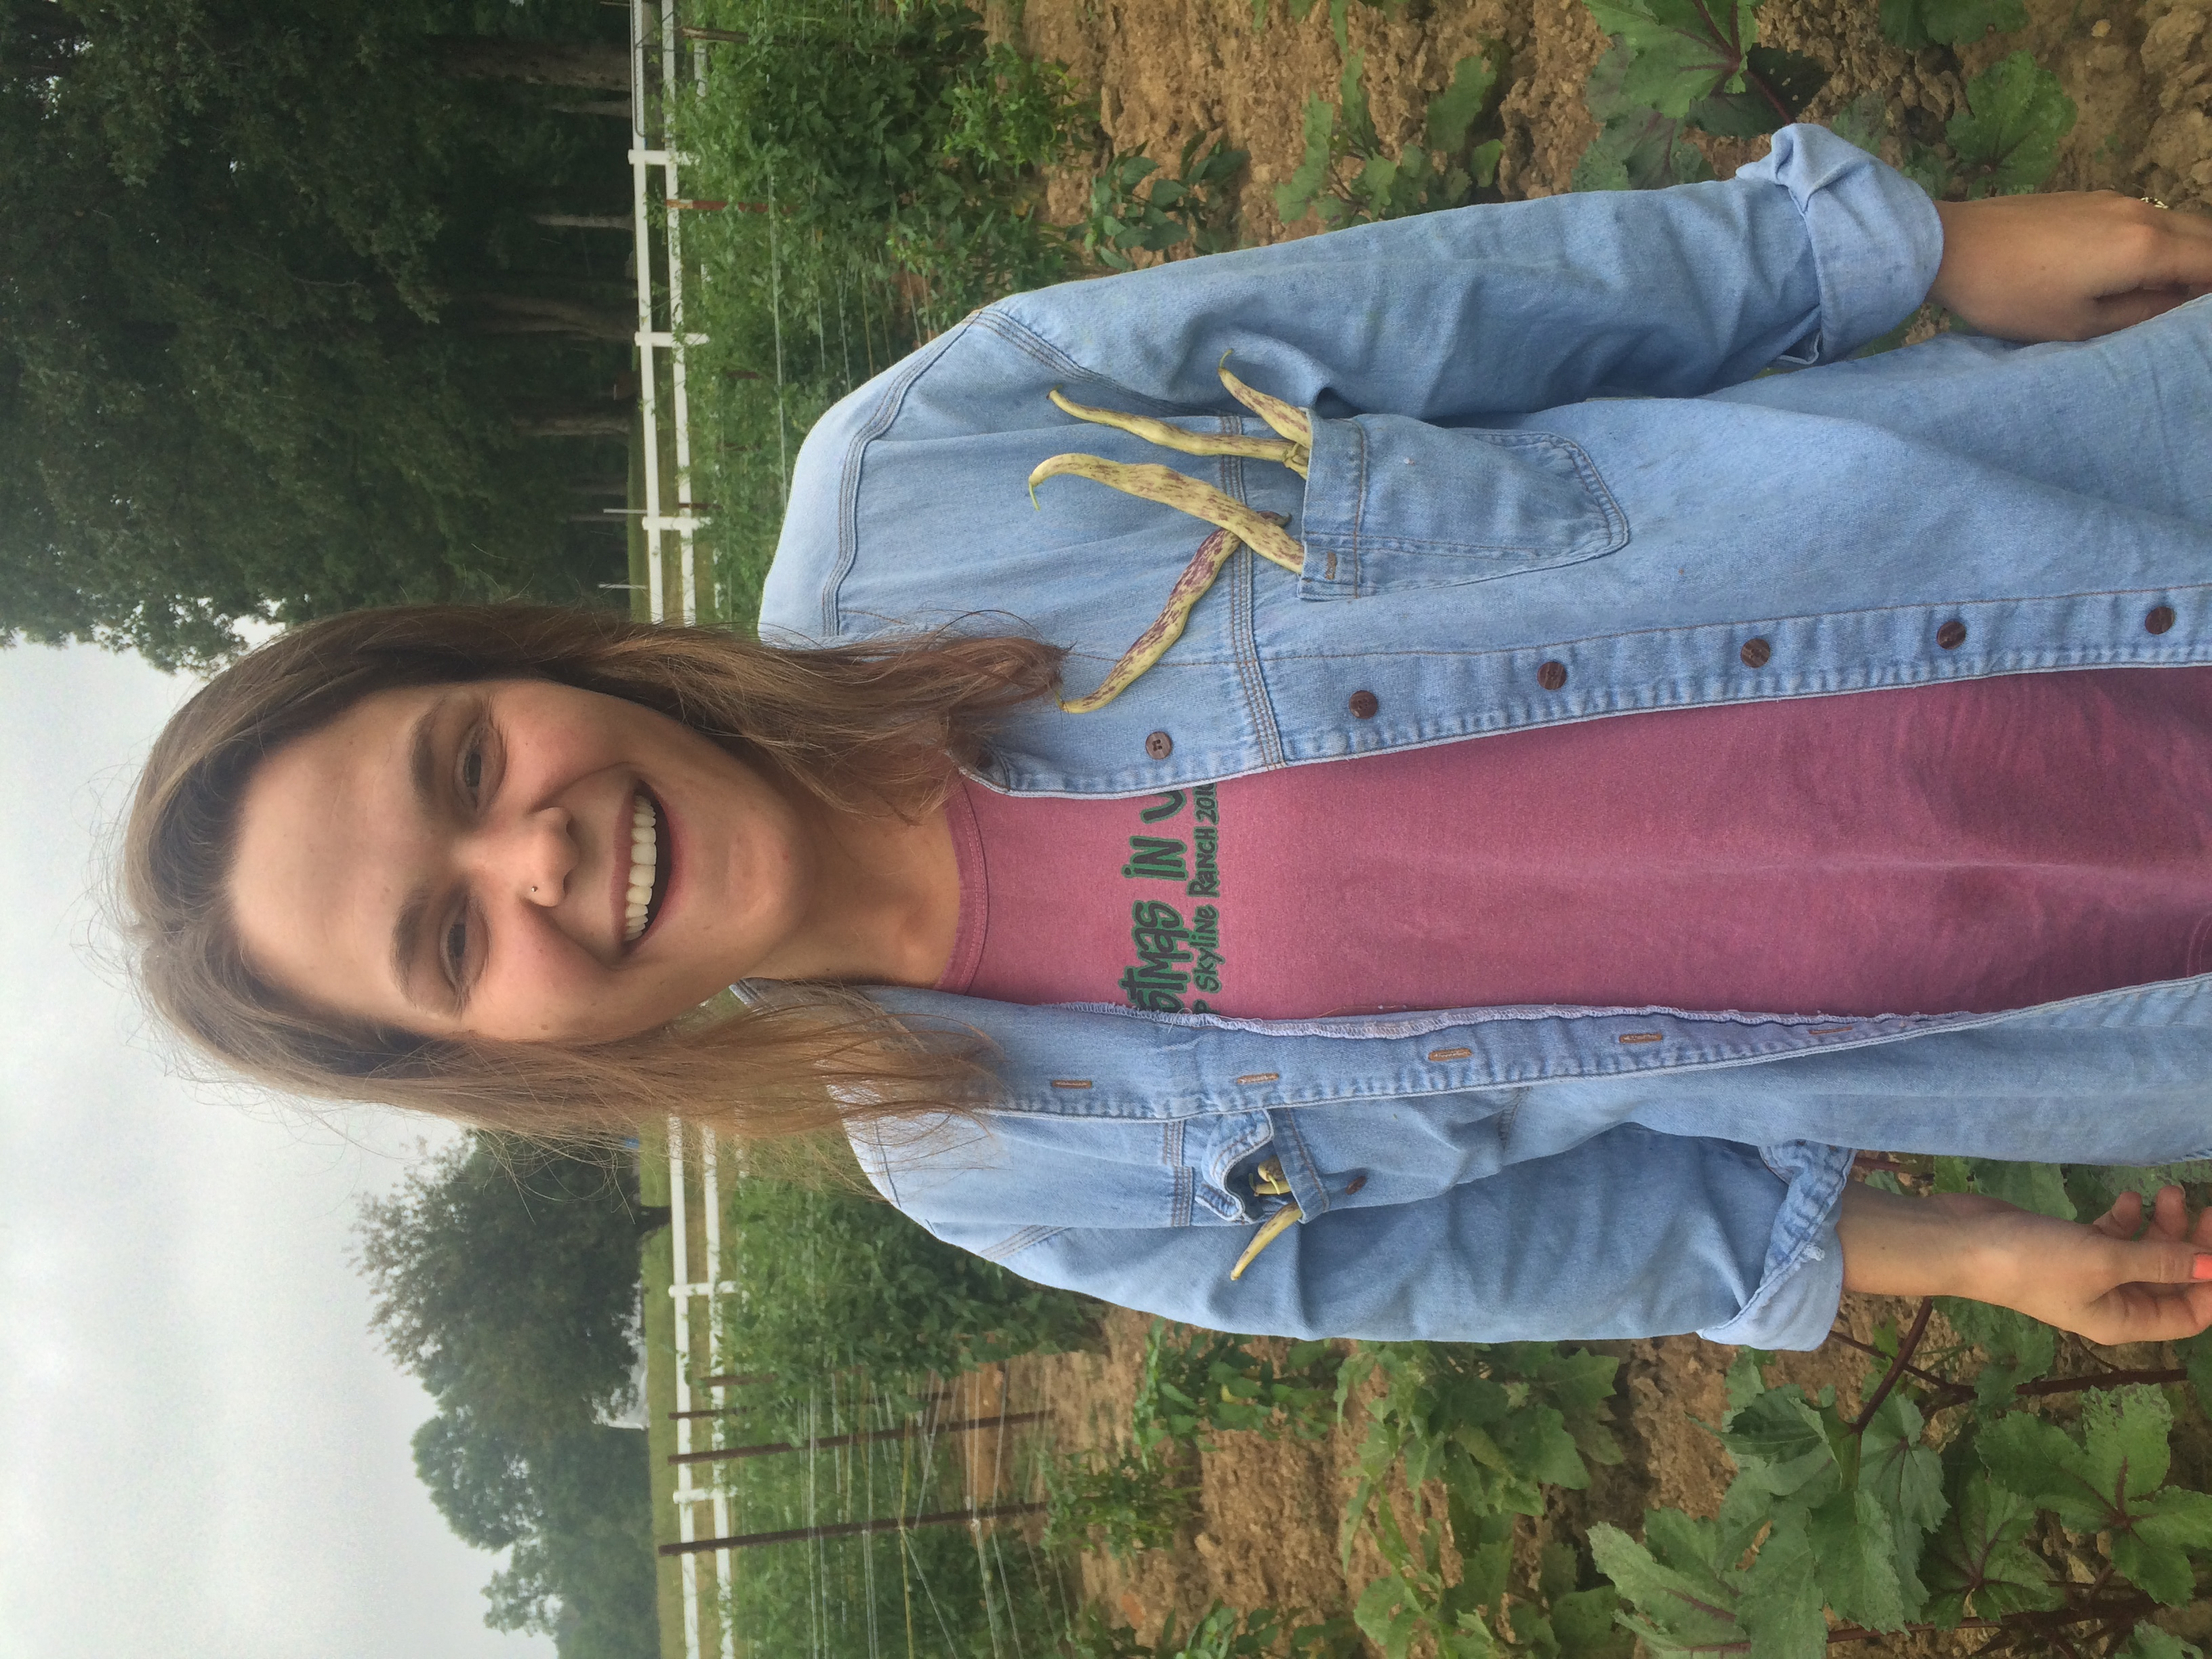 Cousin Sarah harvesting beans and putting em in her pocket!